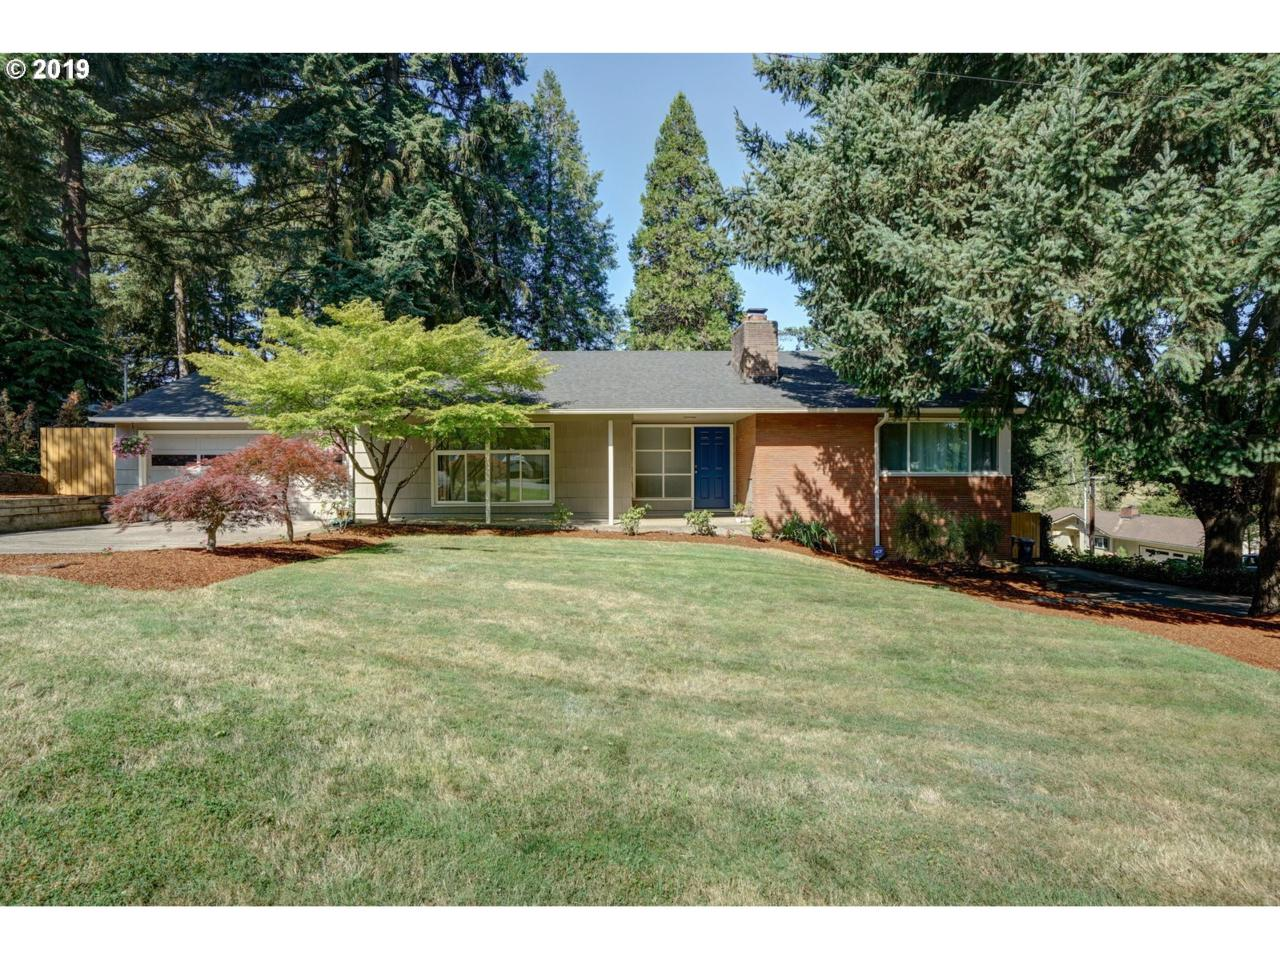 3203 Pioneer Dr - Photo 1